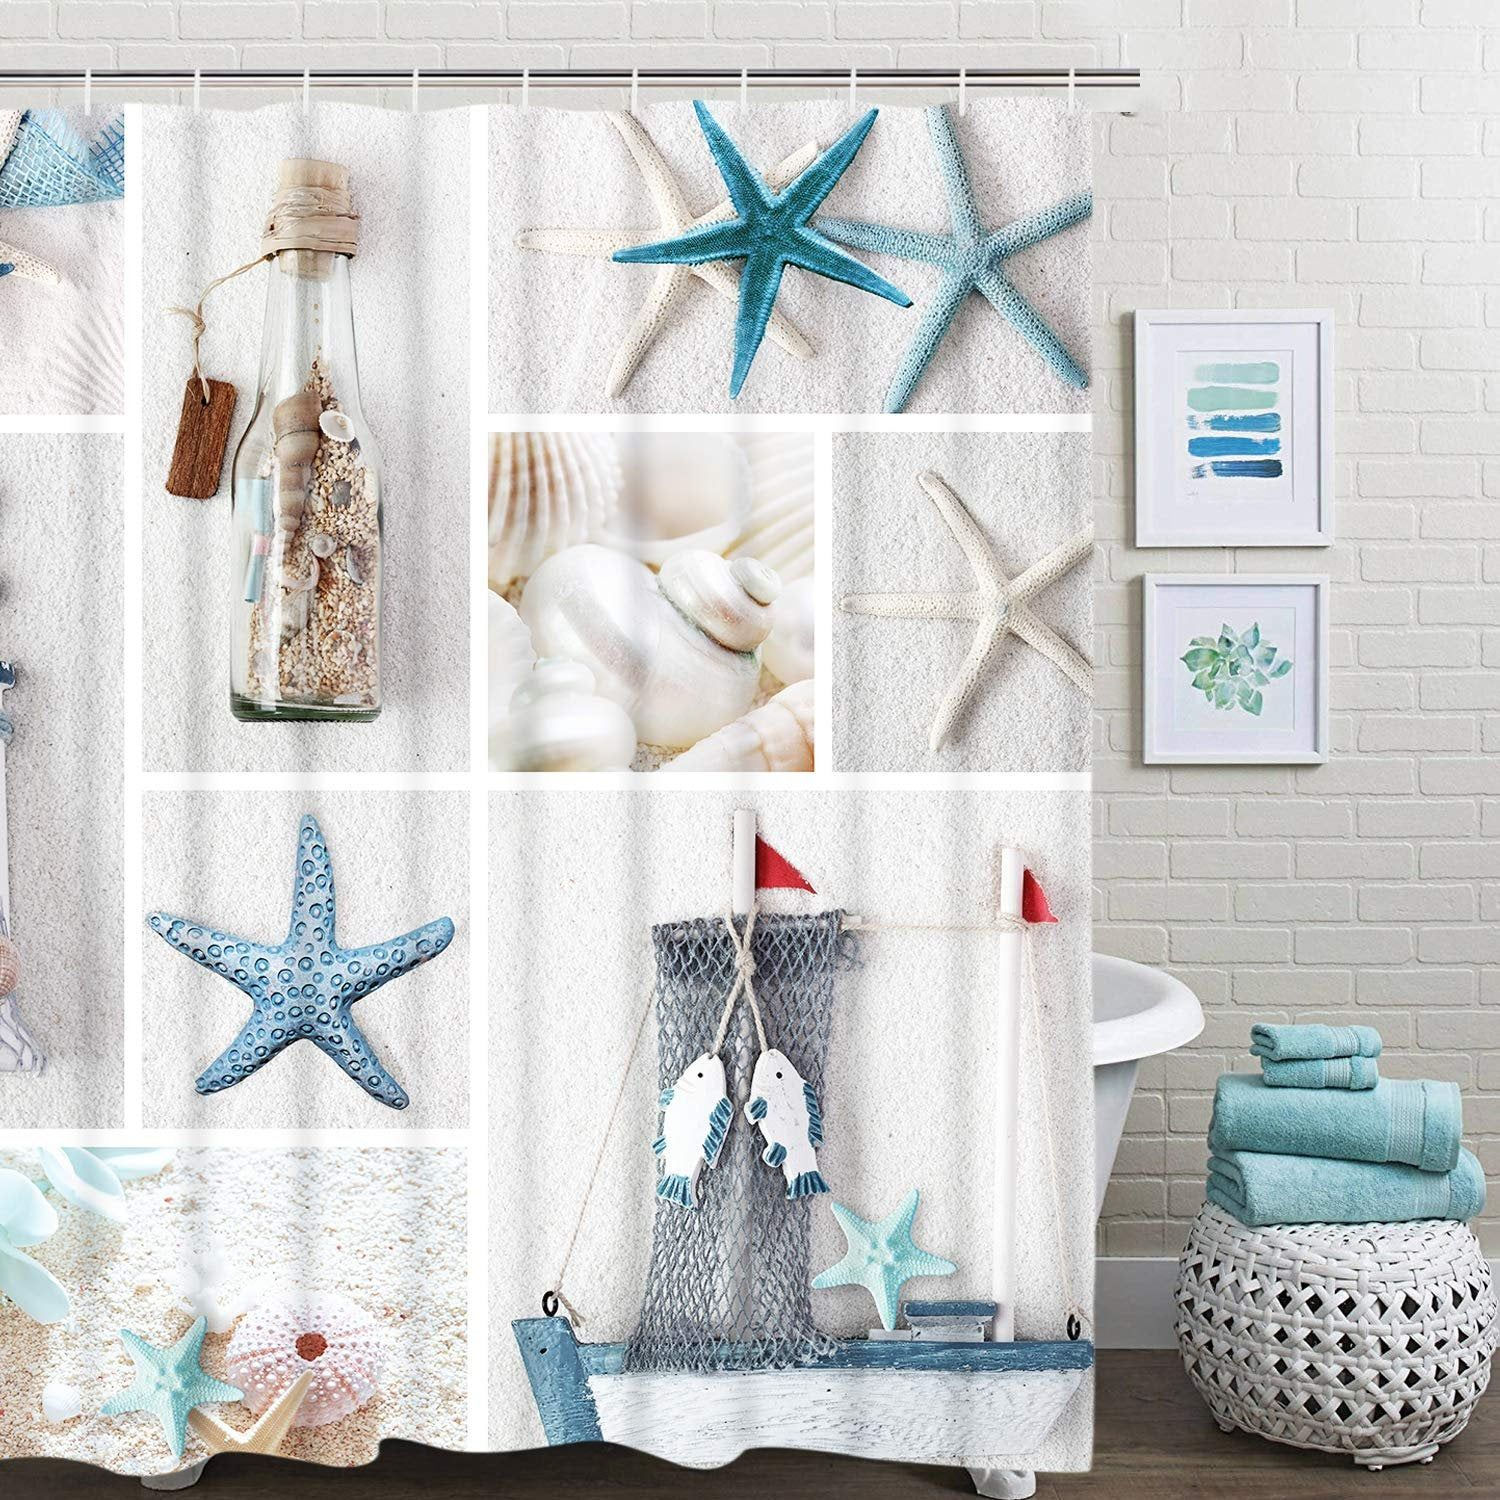 Nautical Shower Curtain Marine Sail Boat Beach Starfish Shell Sea